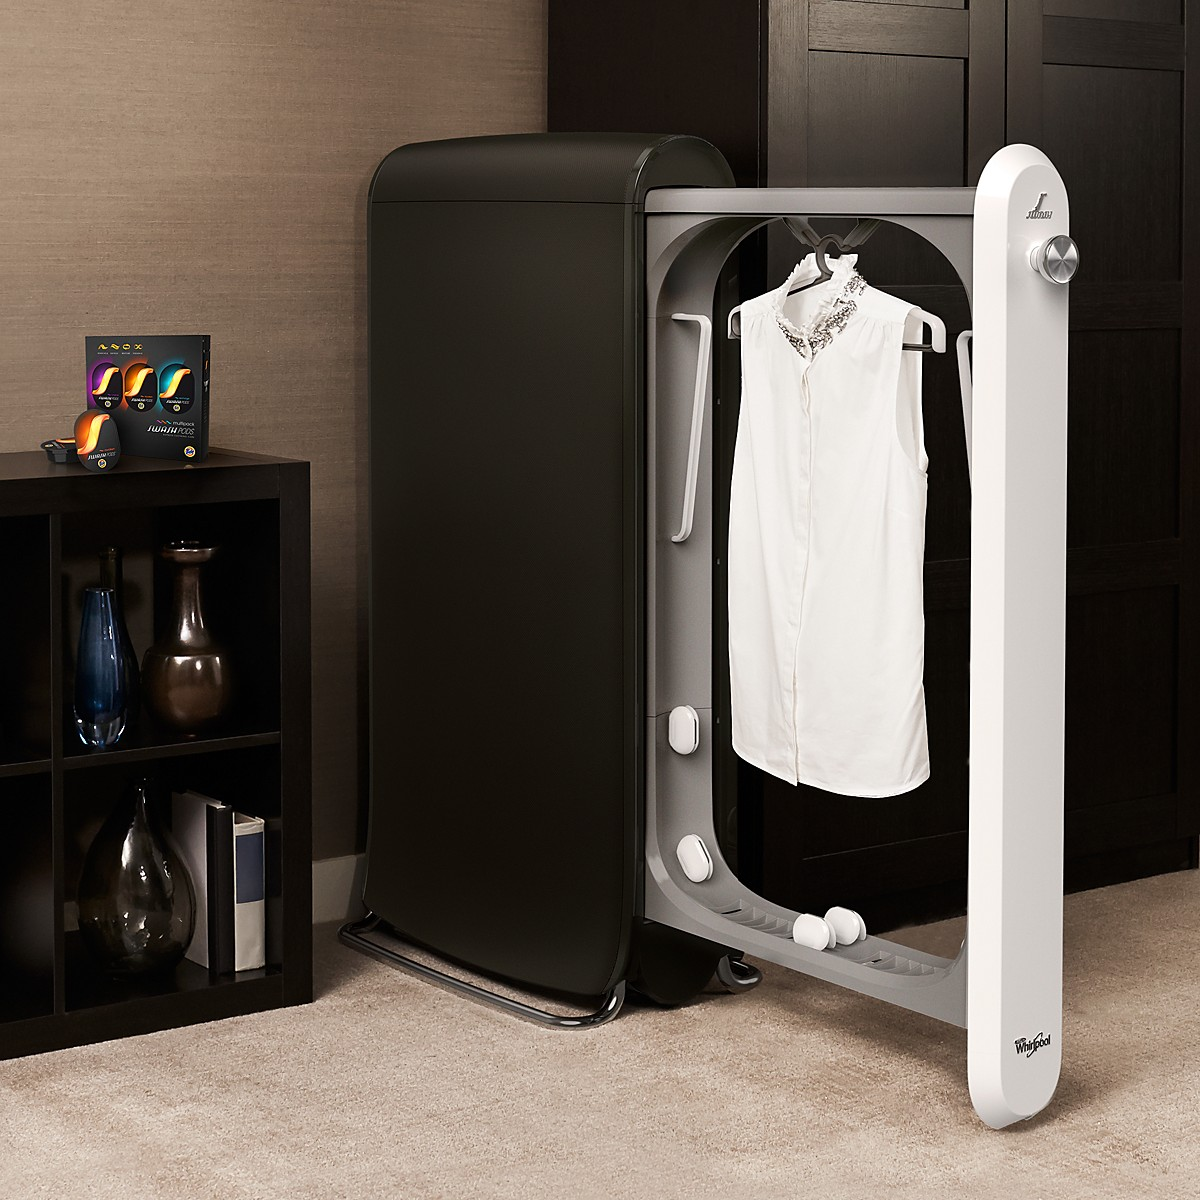 Bedroom Without Closet Swash Is A New Machine That Will Wash Your Clothes And